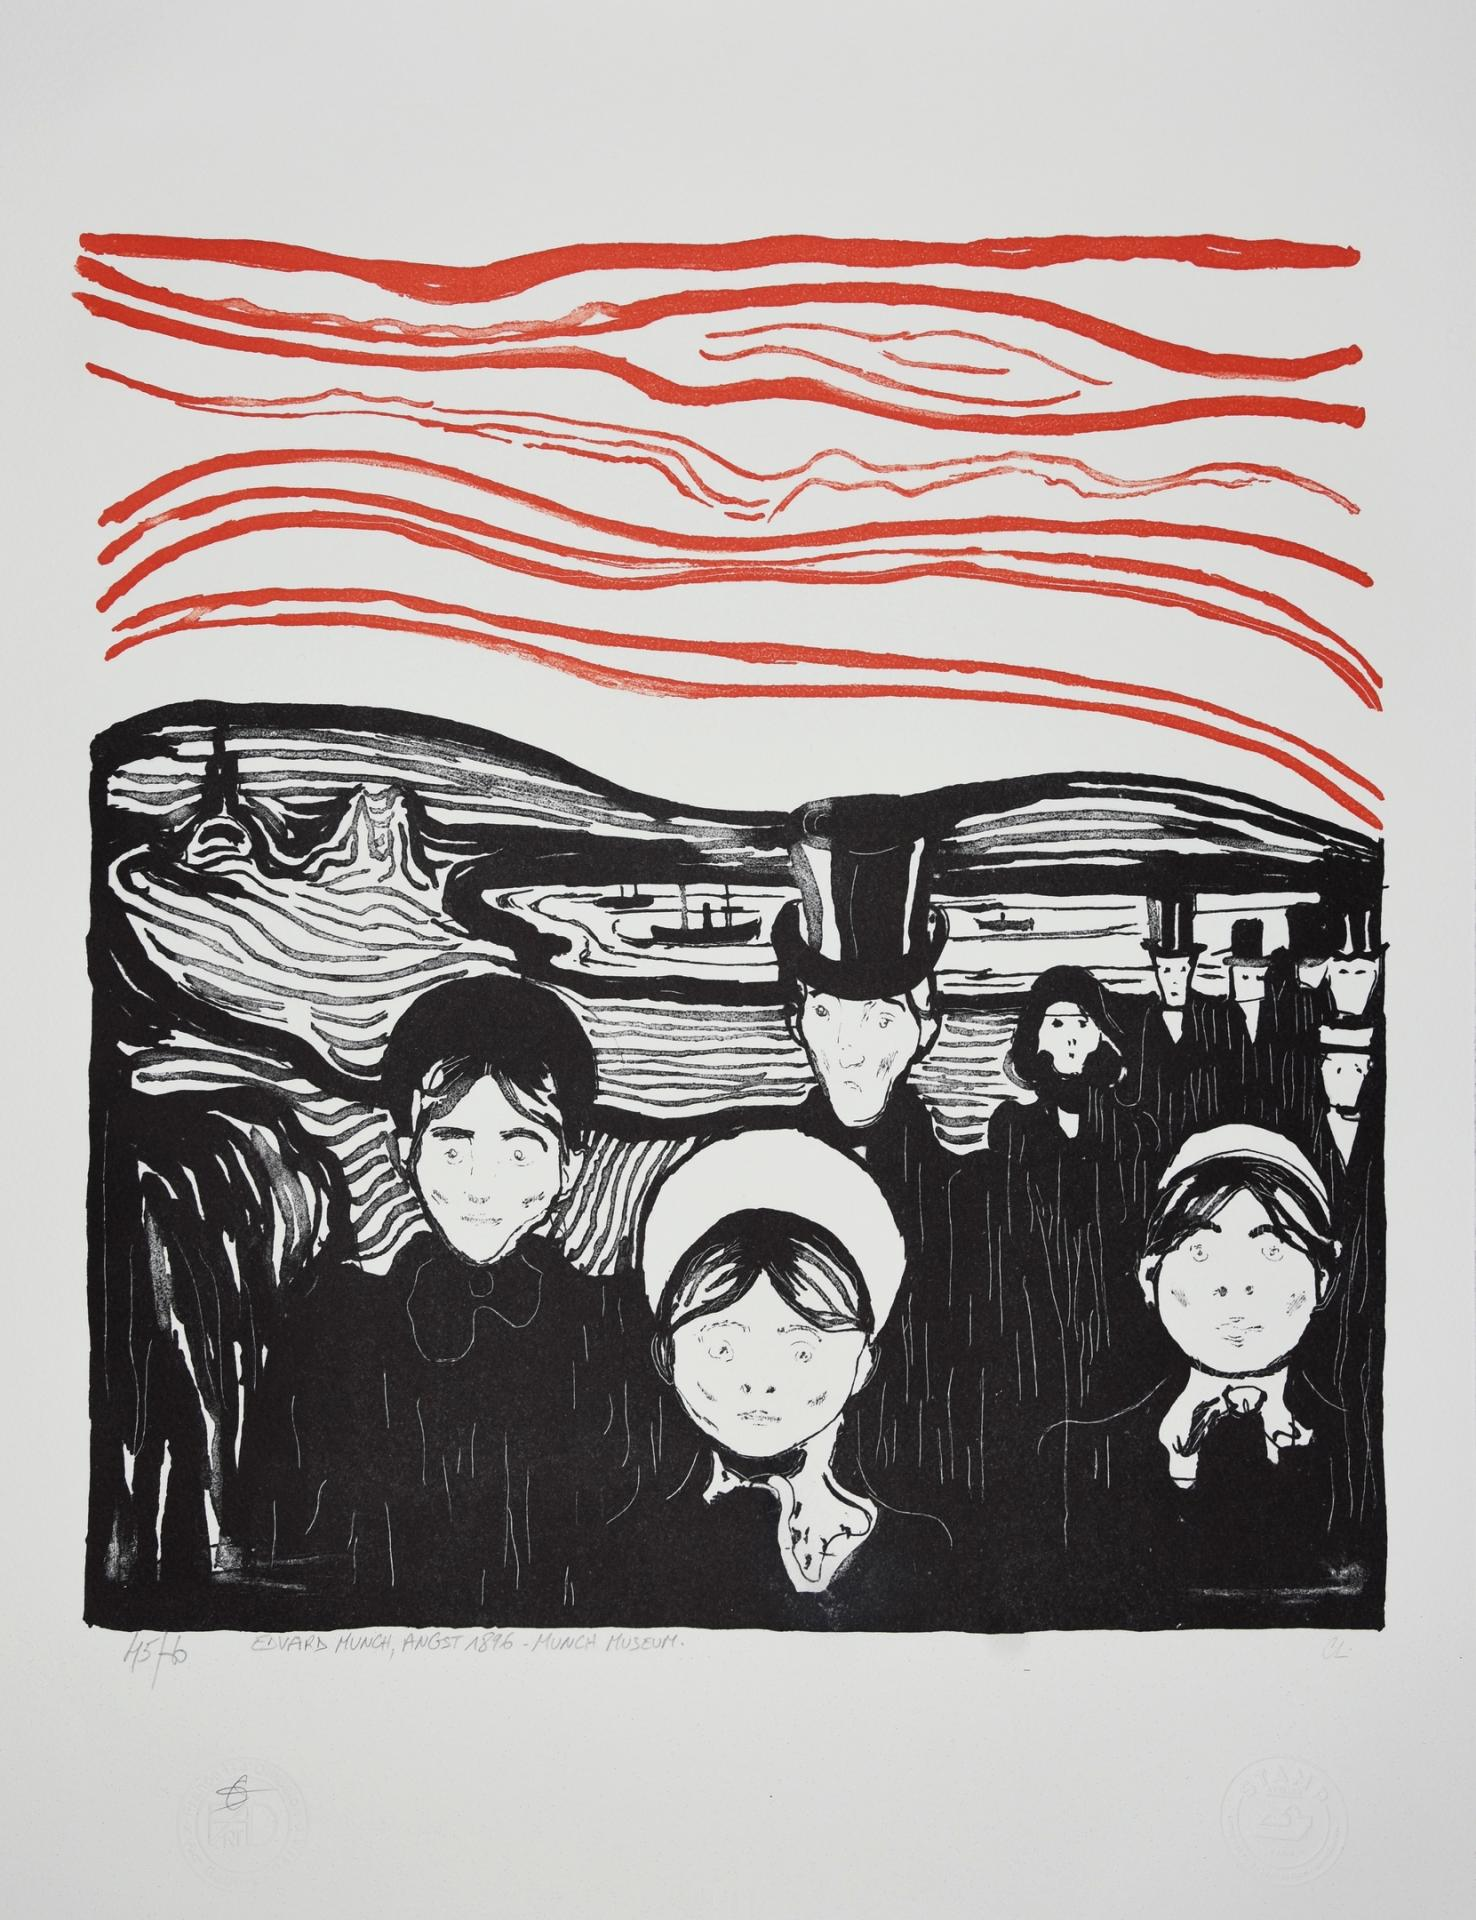 EDVARD MUNCH Lithographie ANGST 1896